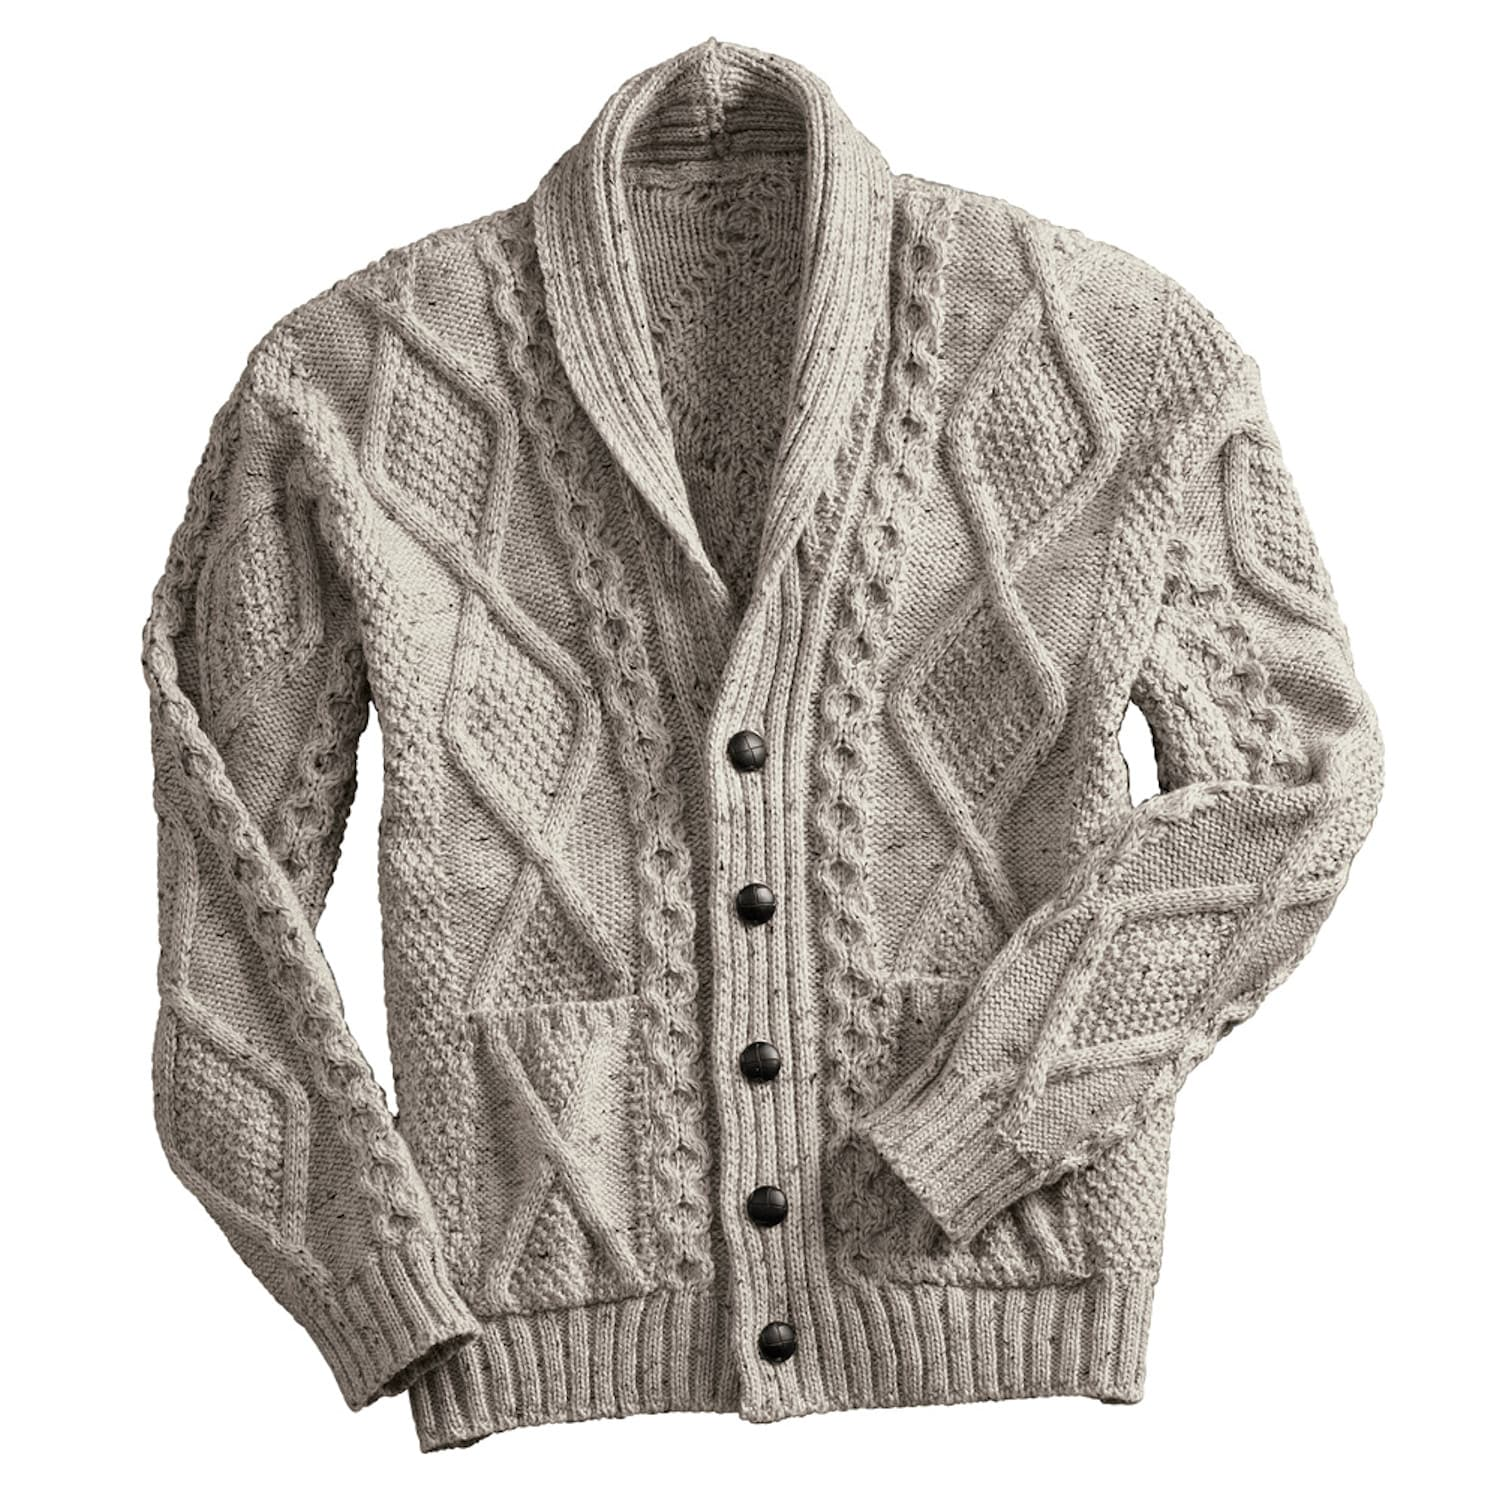 Mixed cable knit patterns distinguish this cardigan sweater, a perfect lightweight fall layer.